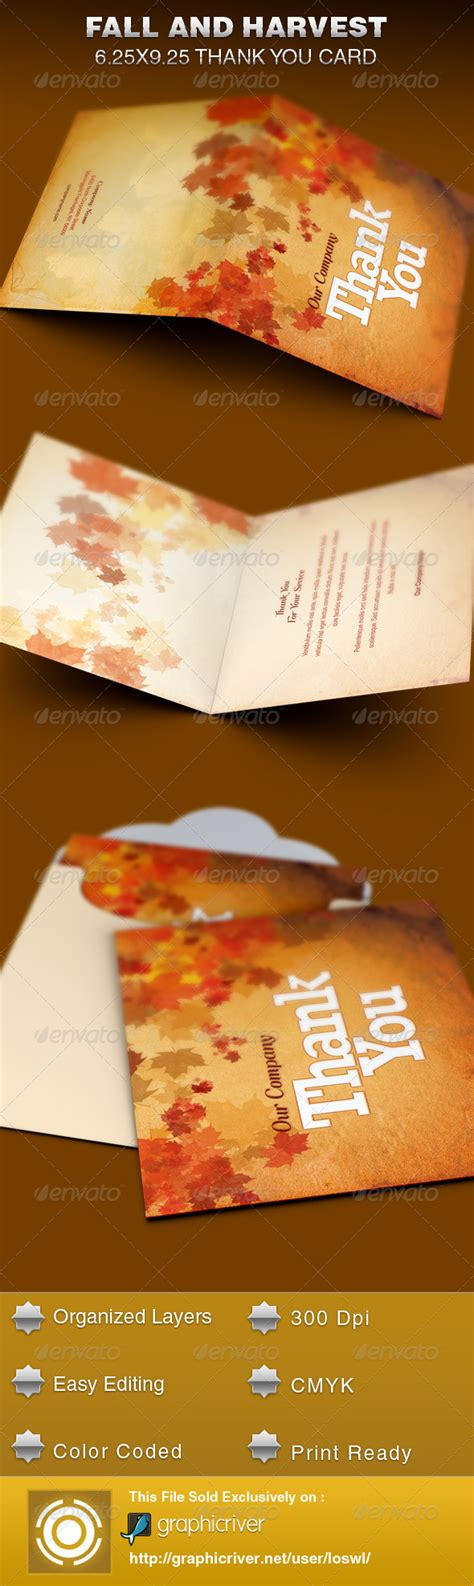 fall card template fall and harvest thank you card template by loswl